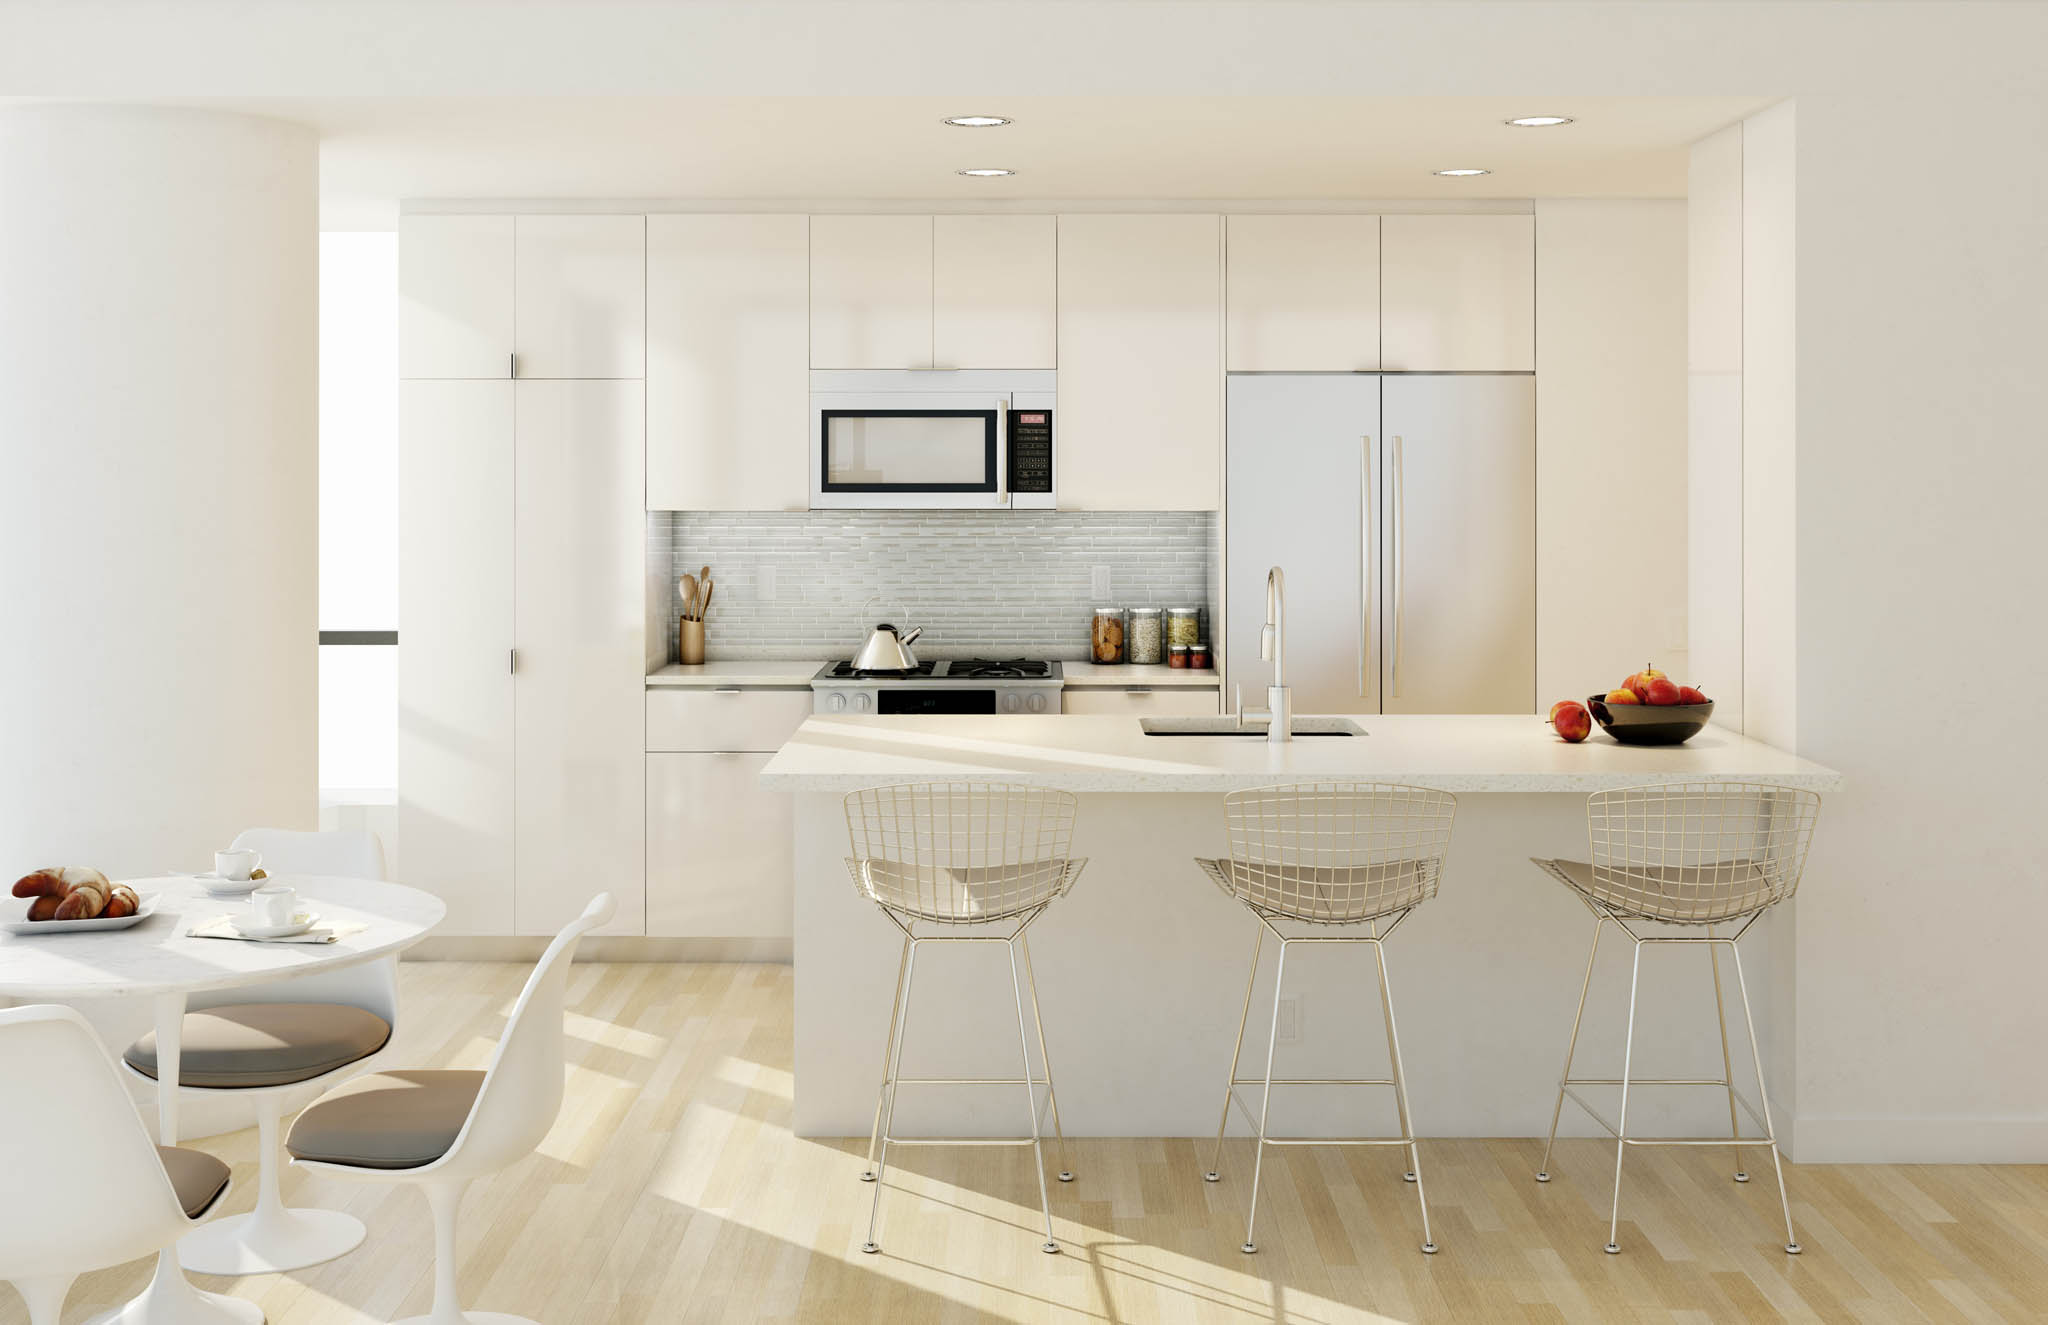 S1100_KitchenInterior_2014-01-24.jpg